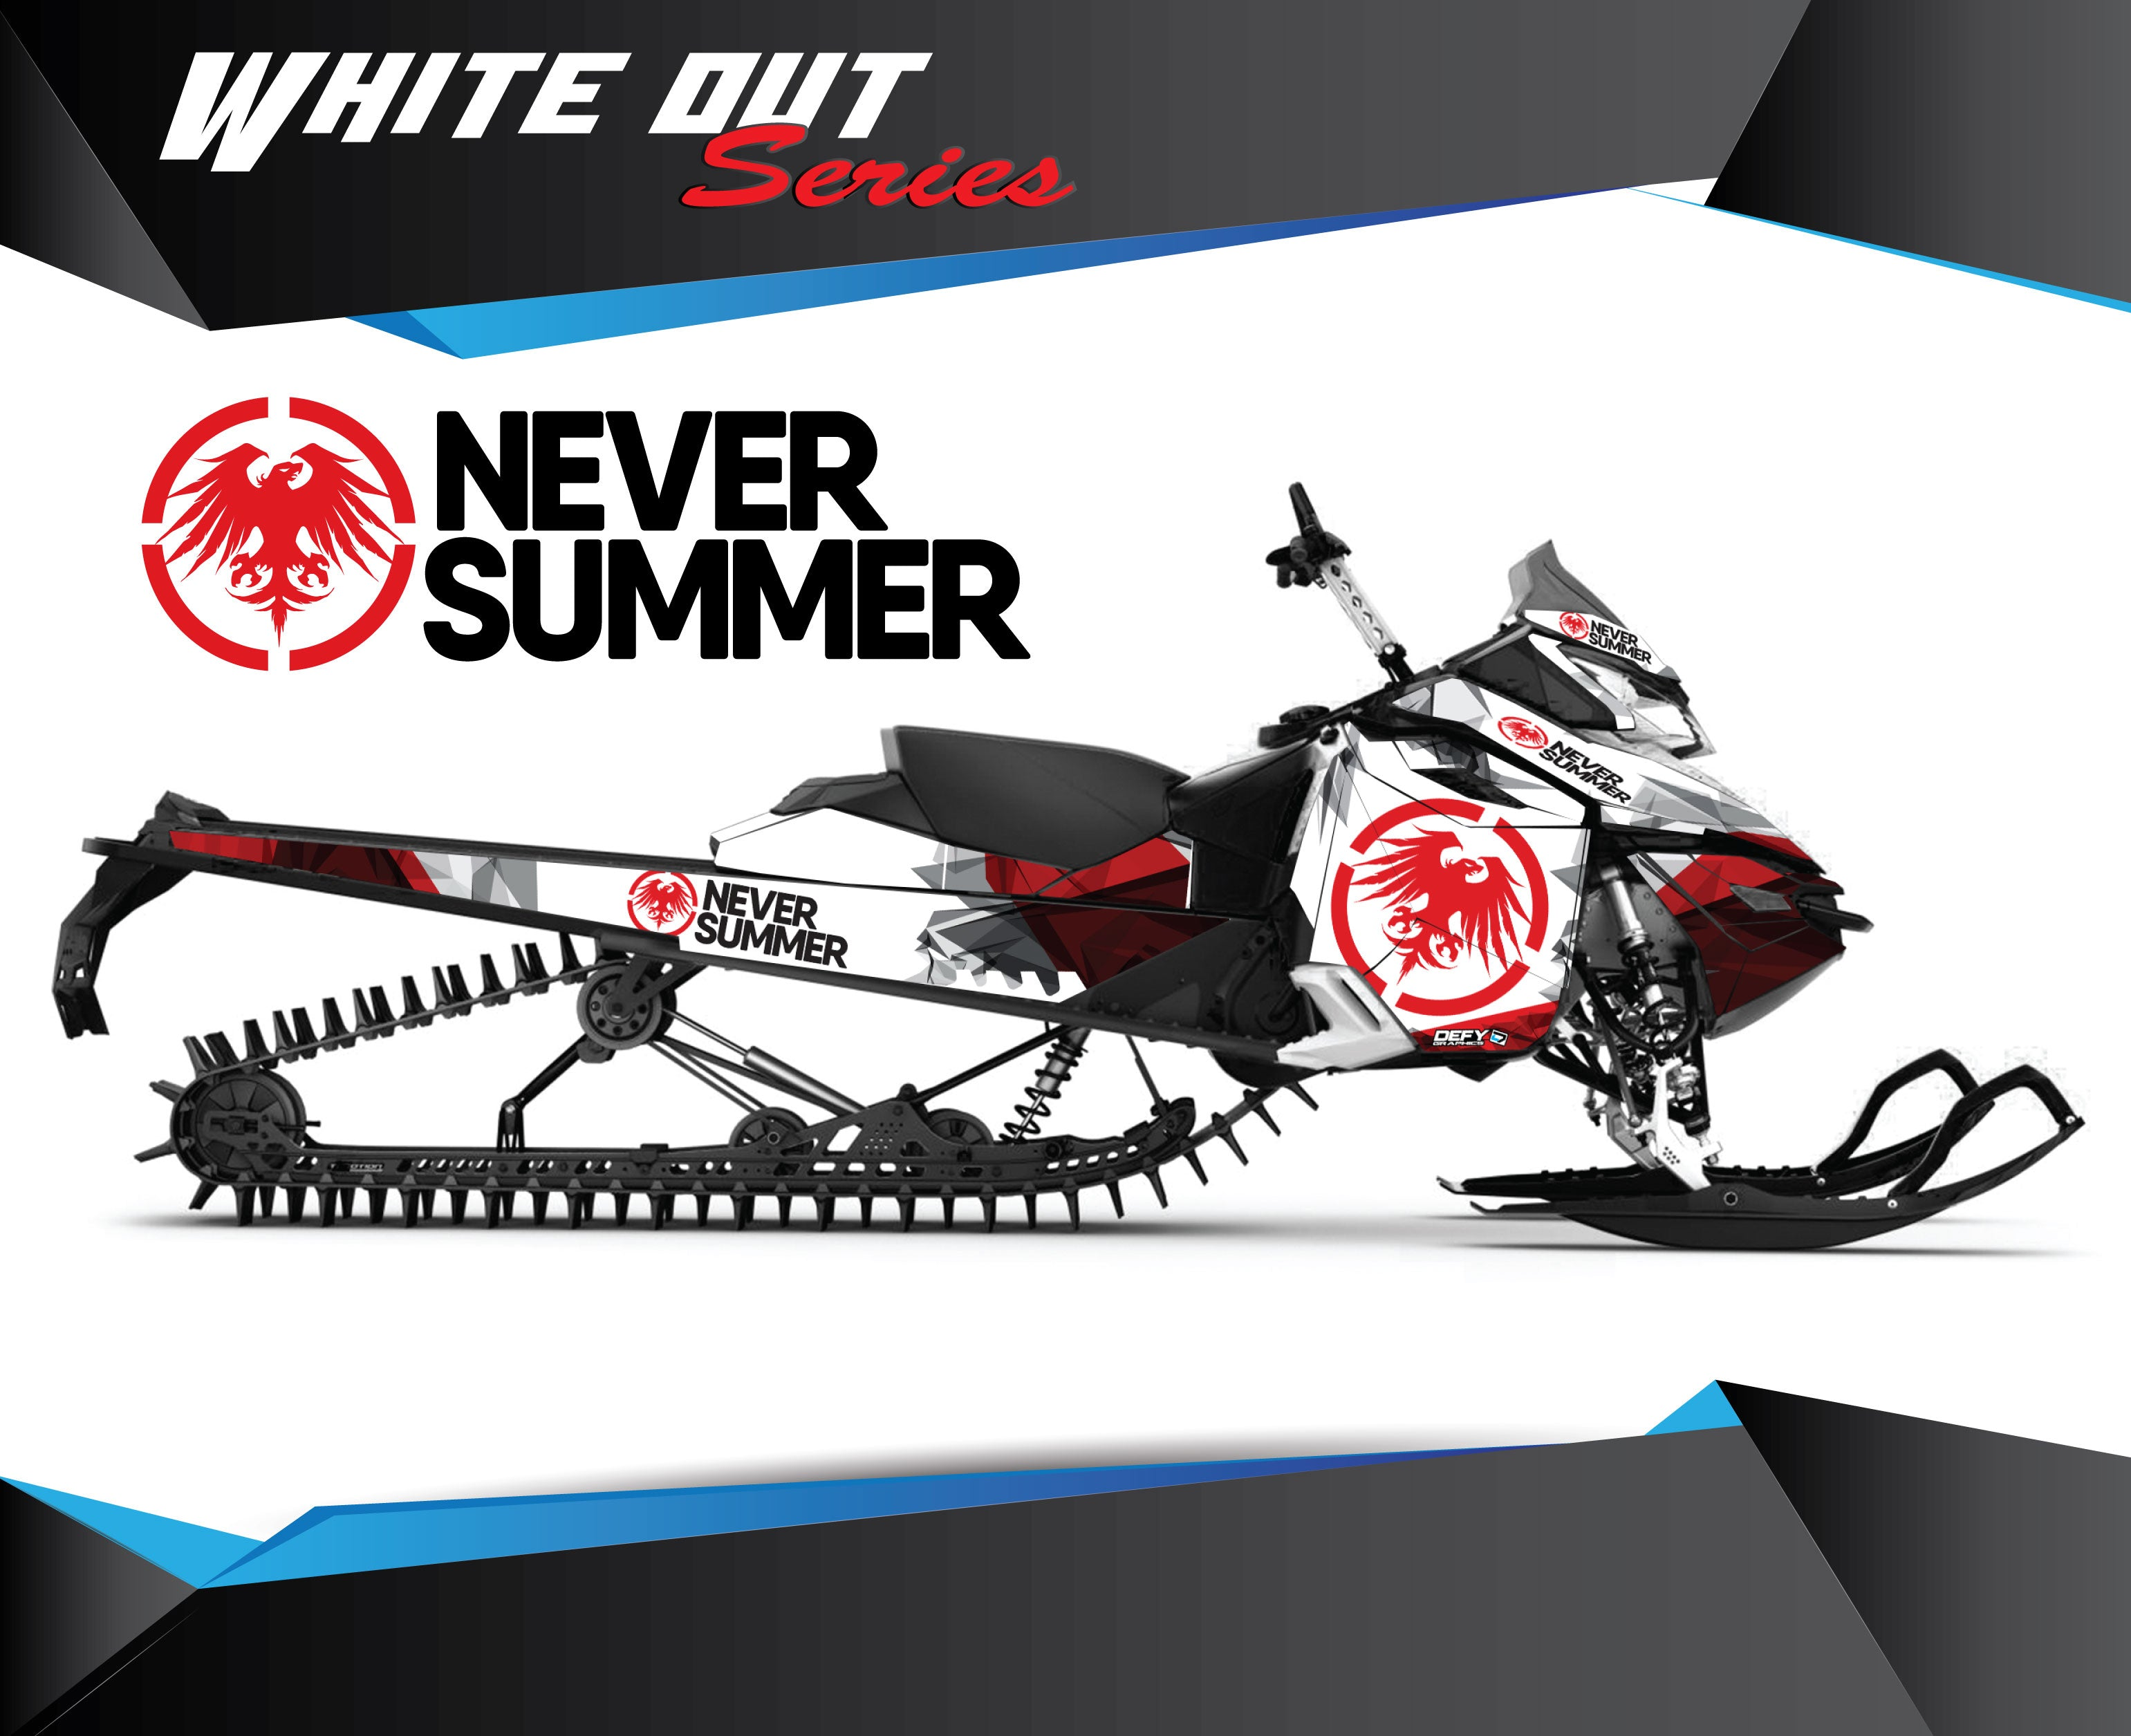 Never Summer WHITE OUT SERIES - Sled Kits